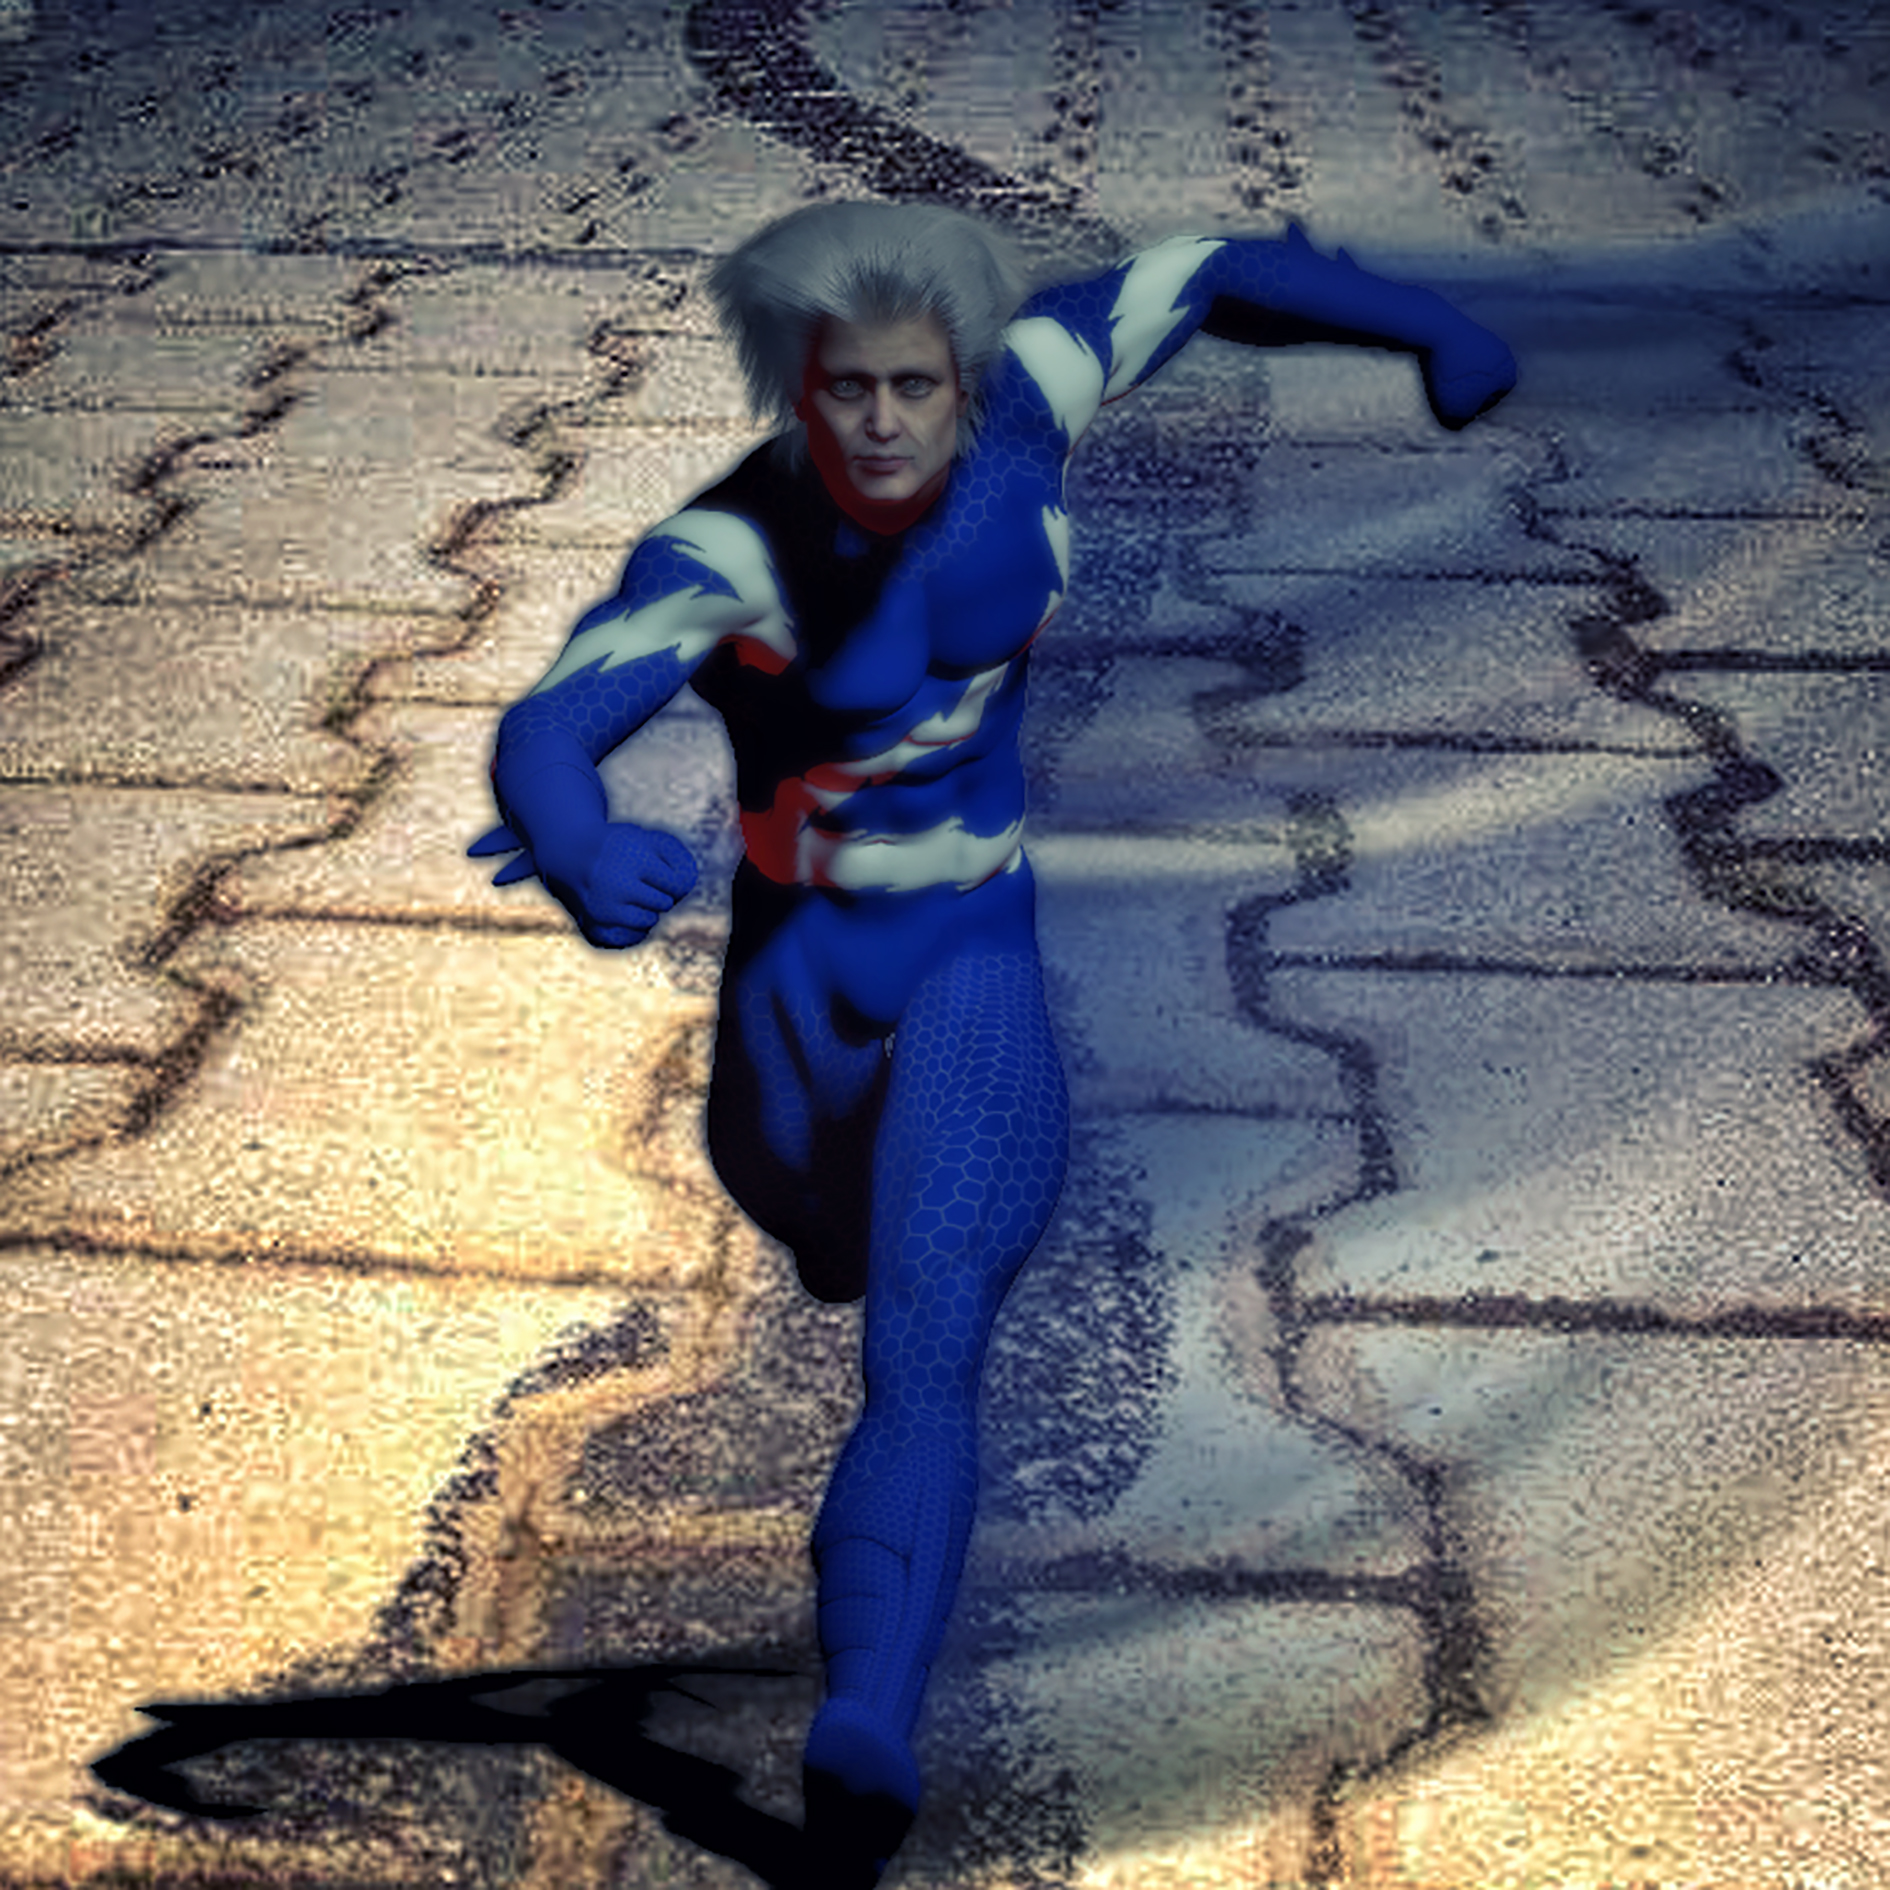 Quicksilver second skin textures for M4